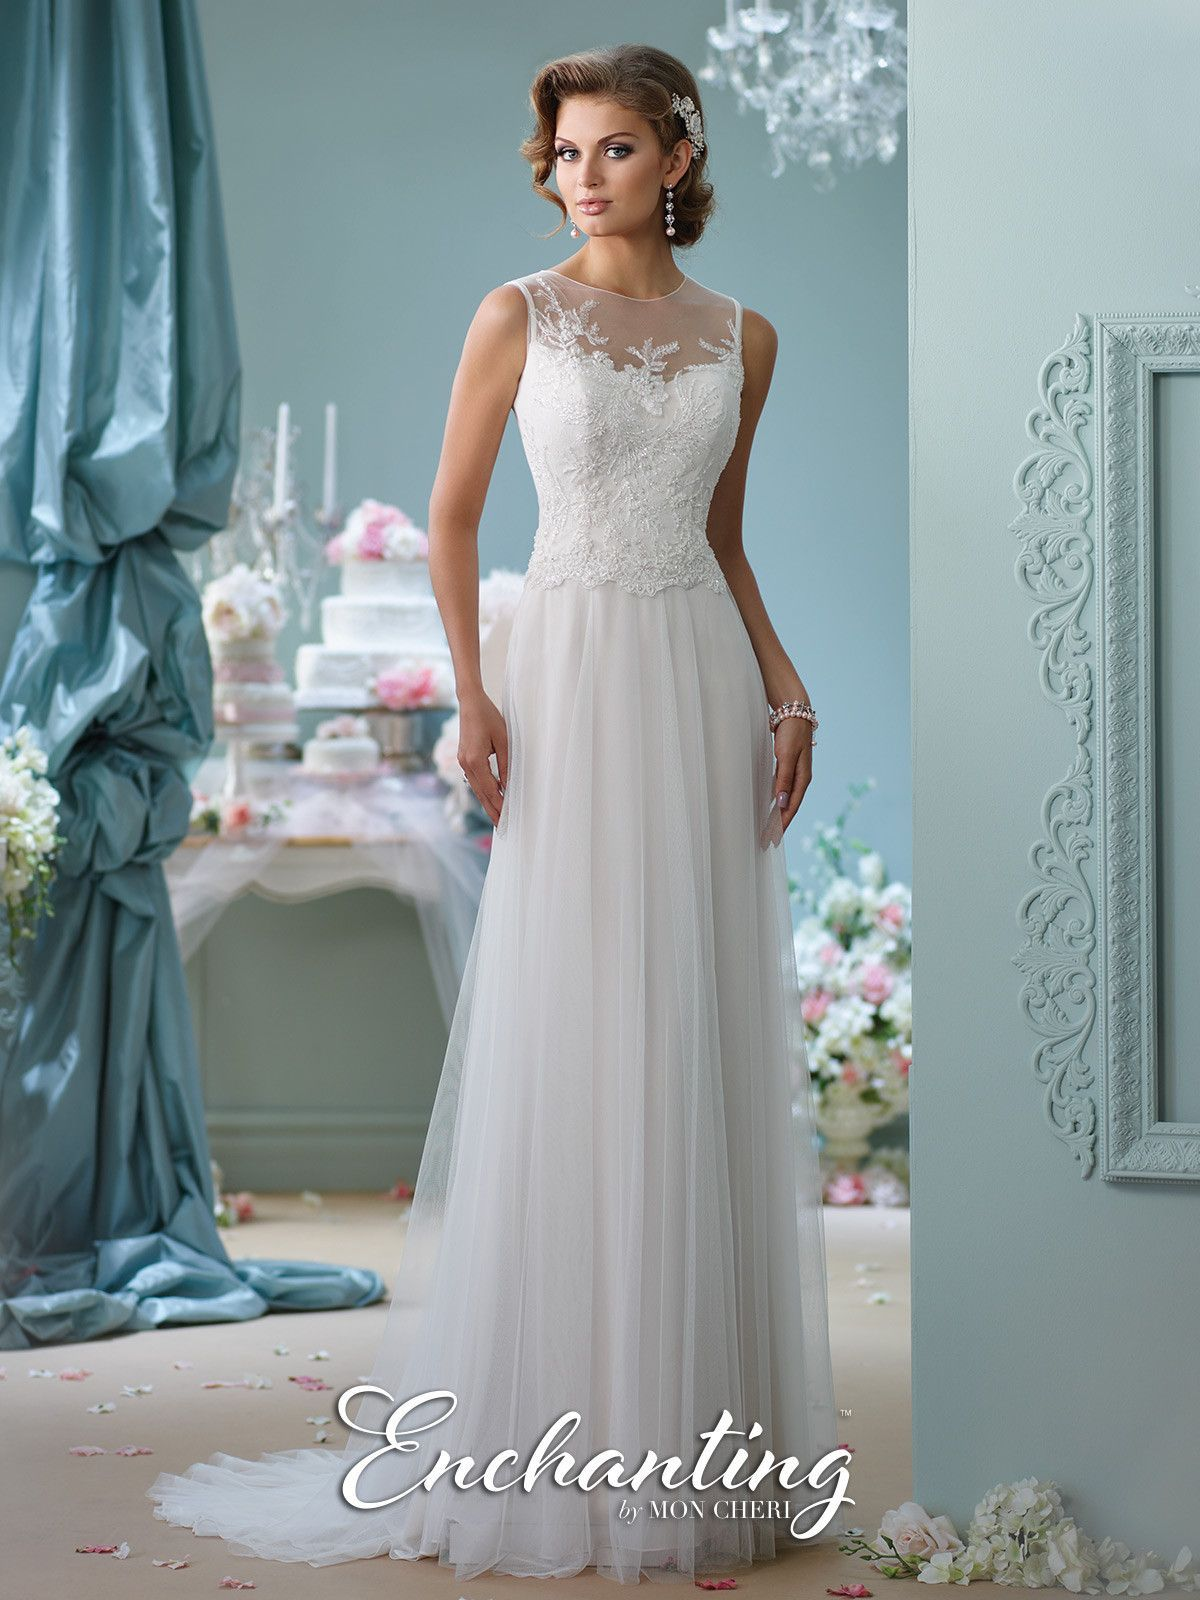 Enchanting all dressed up bridal gown bridal gowns